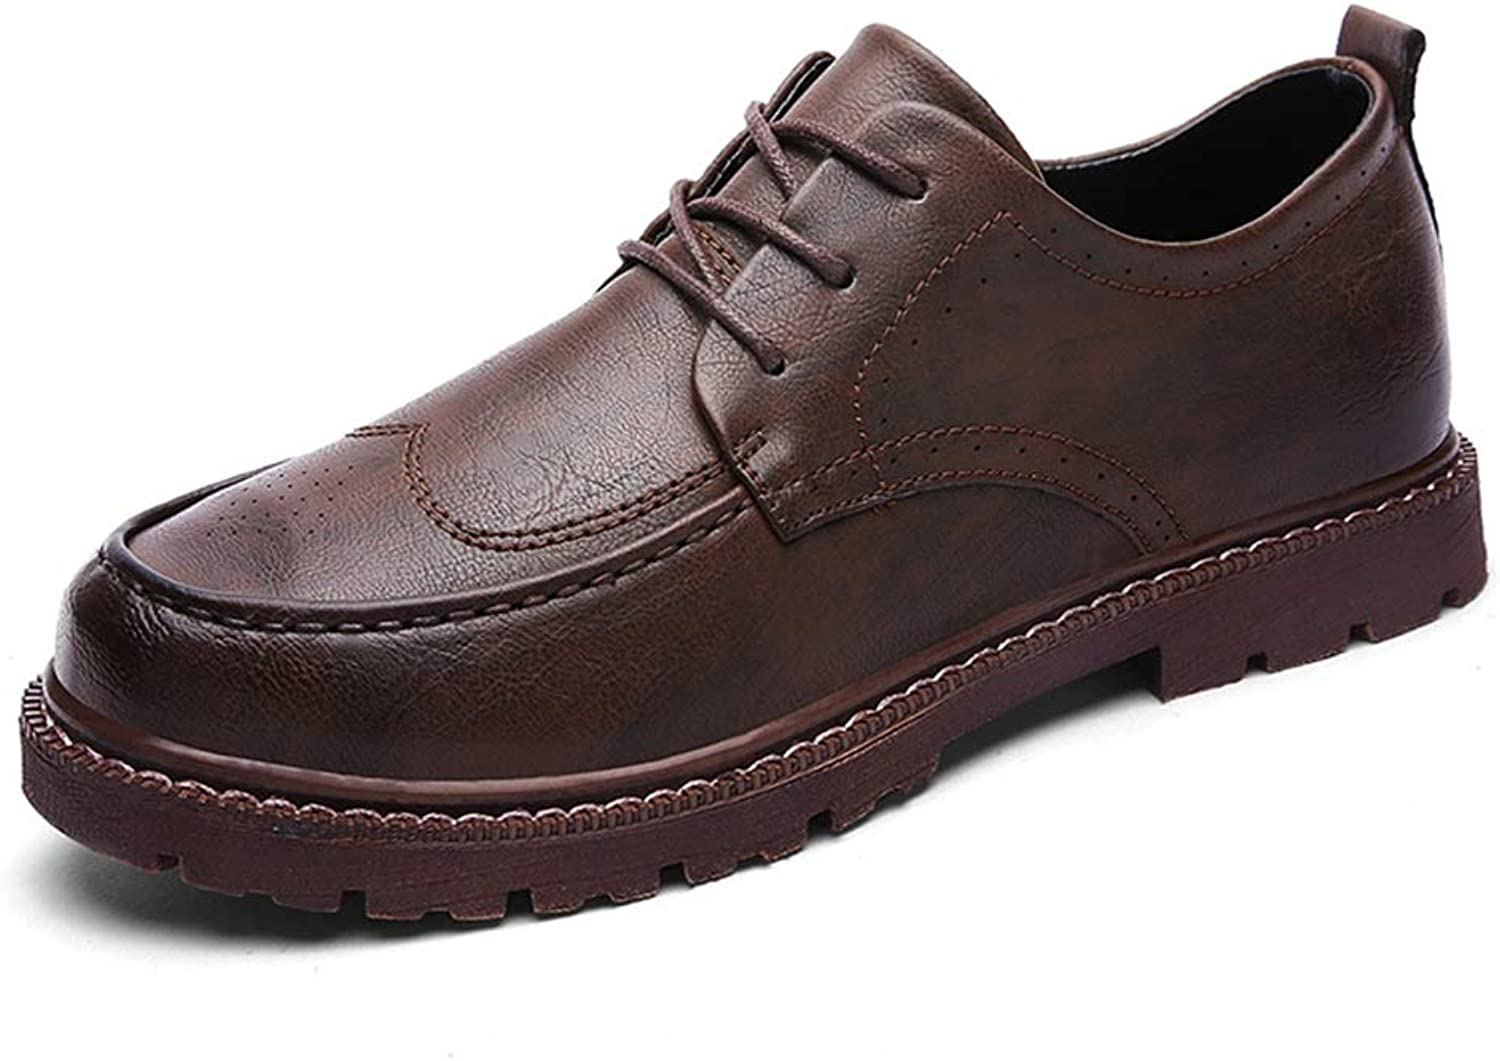 SRY-shoes Men's Simple Fashion Oxford Casual Classic Versatile Comfortable Round Toe Outsole Brogue shoes